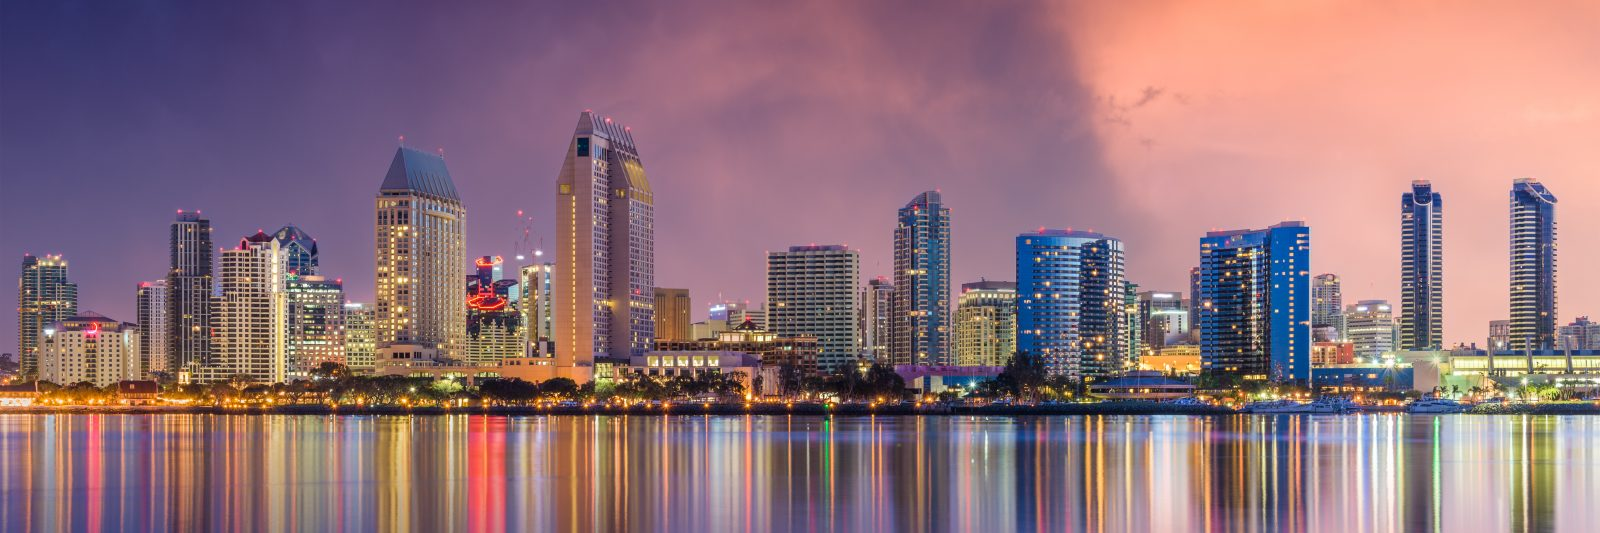 San Diego Skyline reflecting in the water at sunset with purple and pink sky